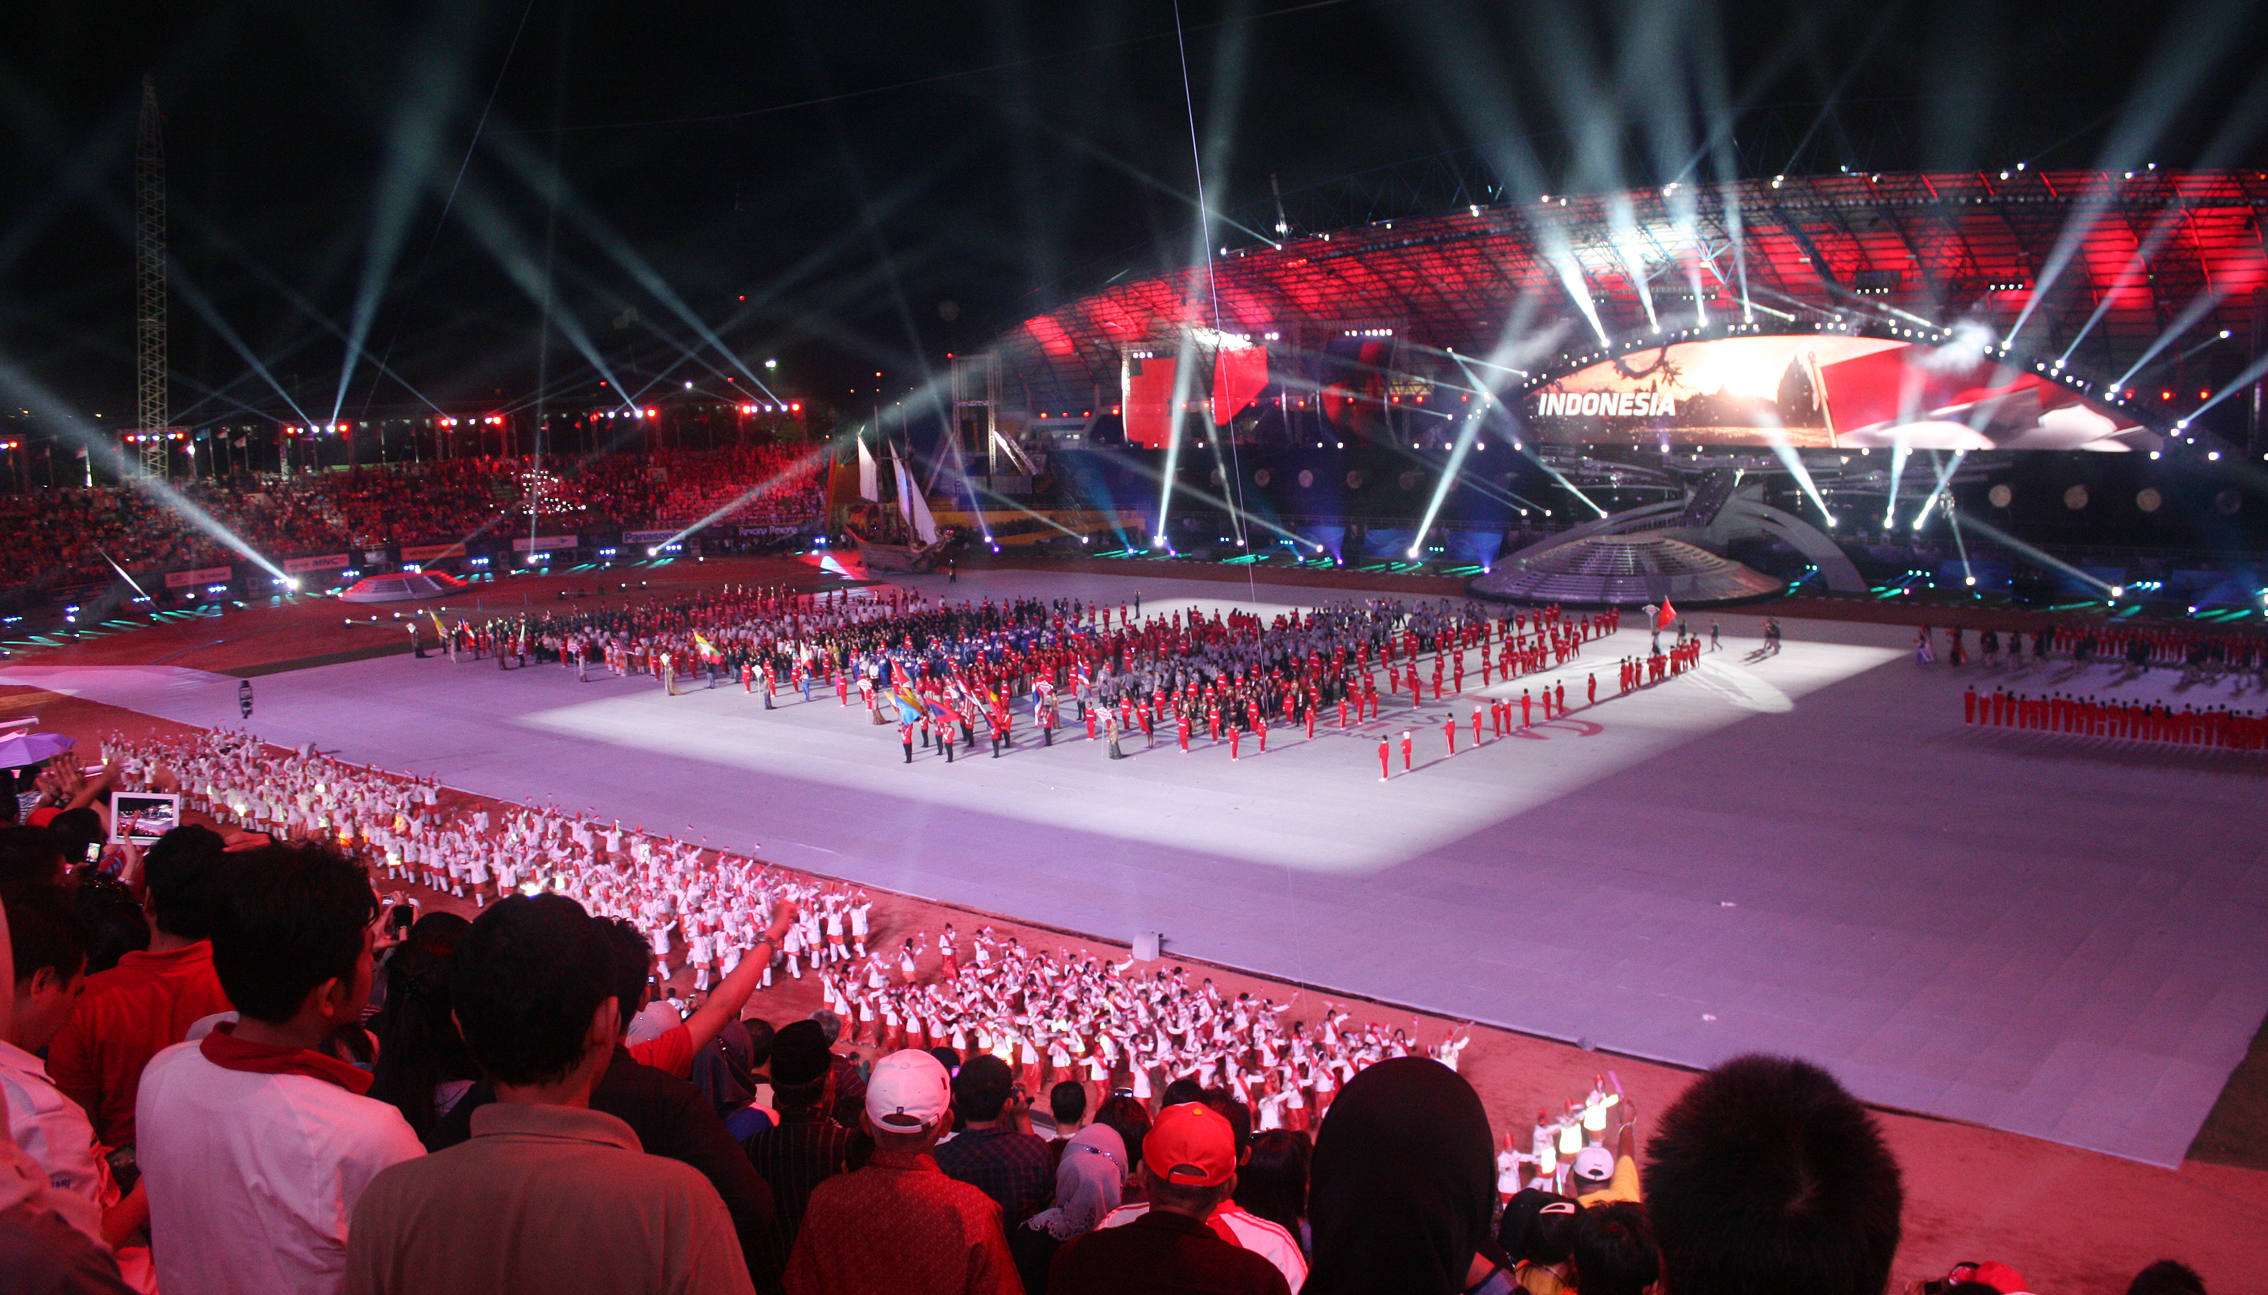 File:Indonesian athletes marching, SEA Games 2011 Opening ...